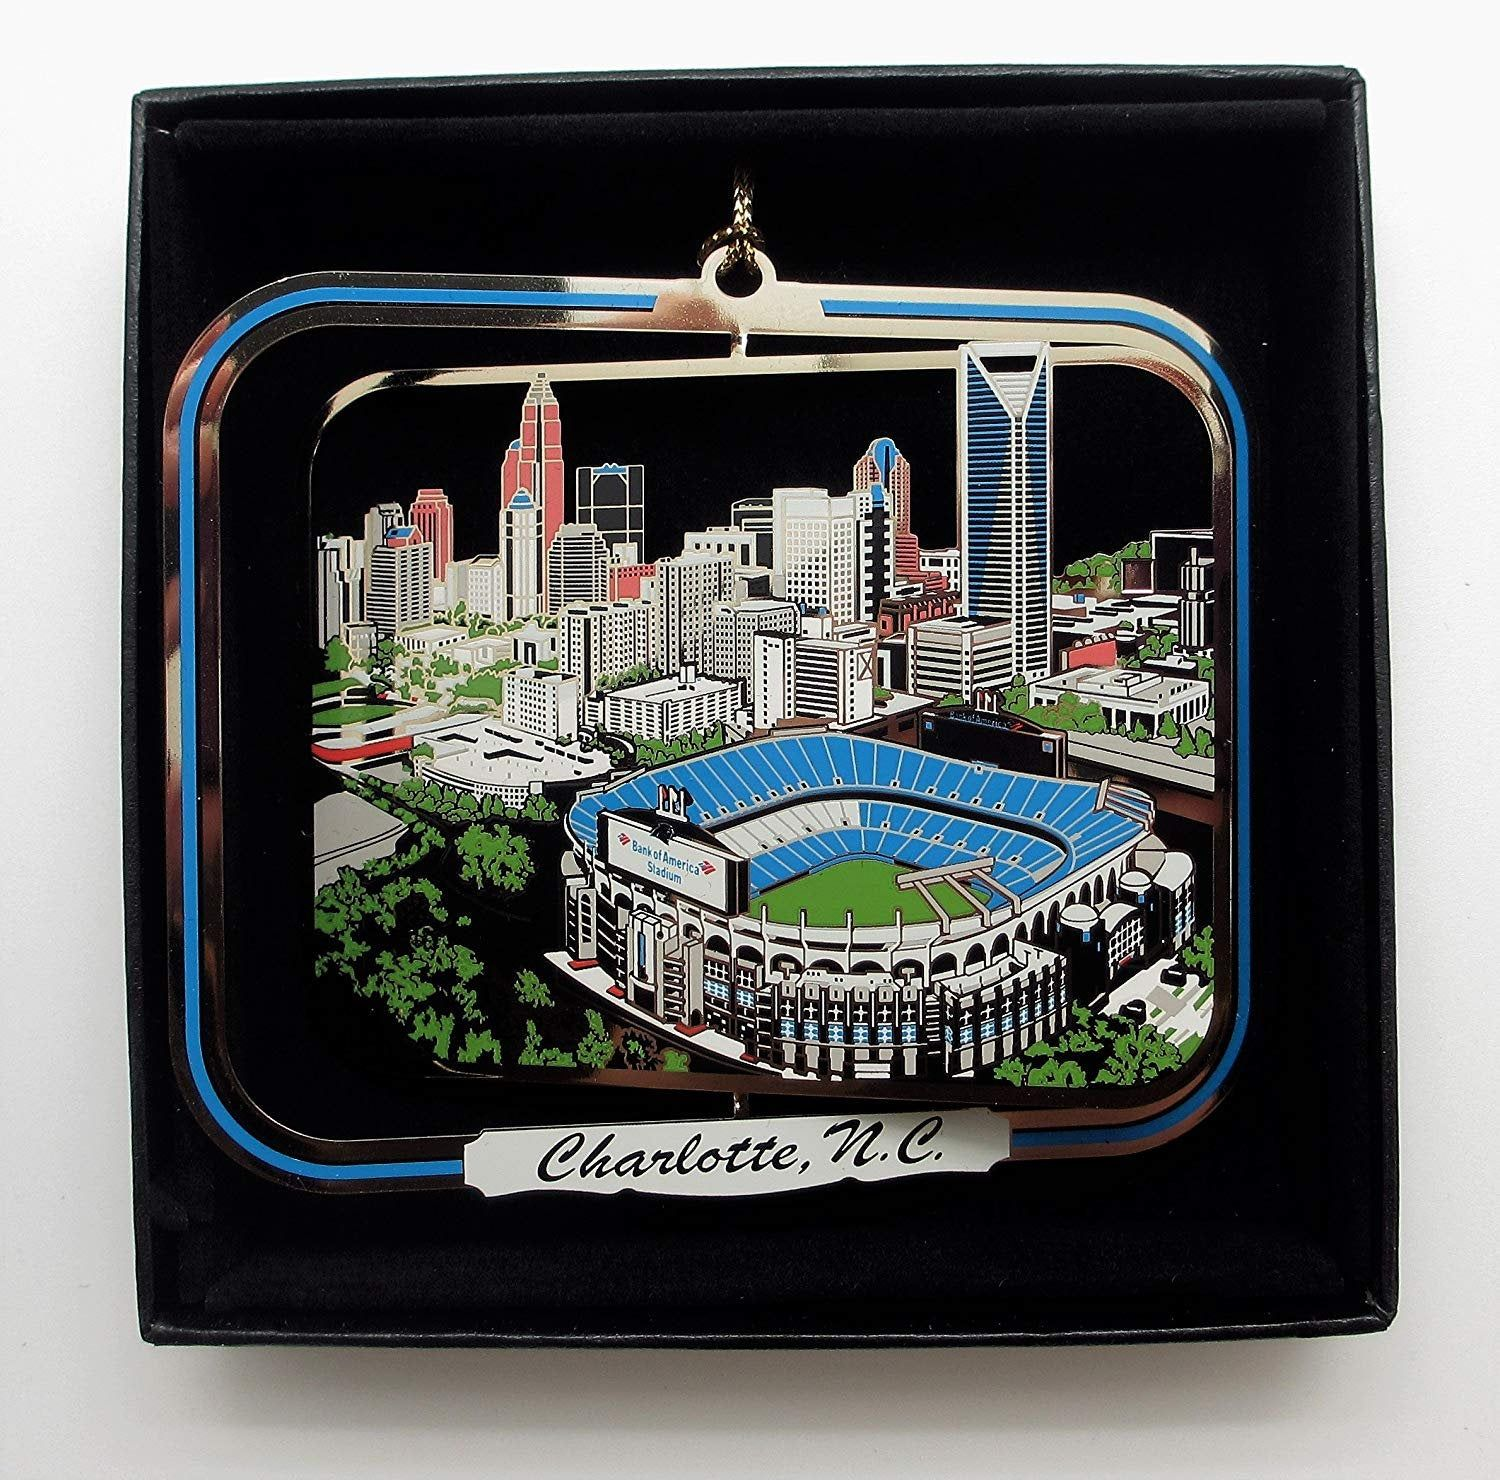 Christmas Show 2021 Charlotte Nc Charlotte Nc Landmarks Brass Ornament Etsy In 2021 Brass Ornaments How To Make Ornaments Business Gifts